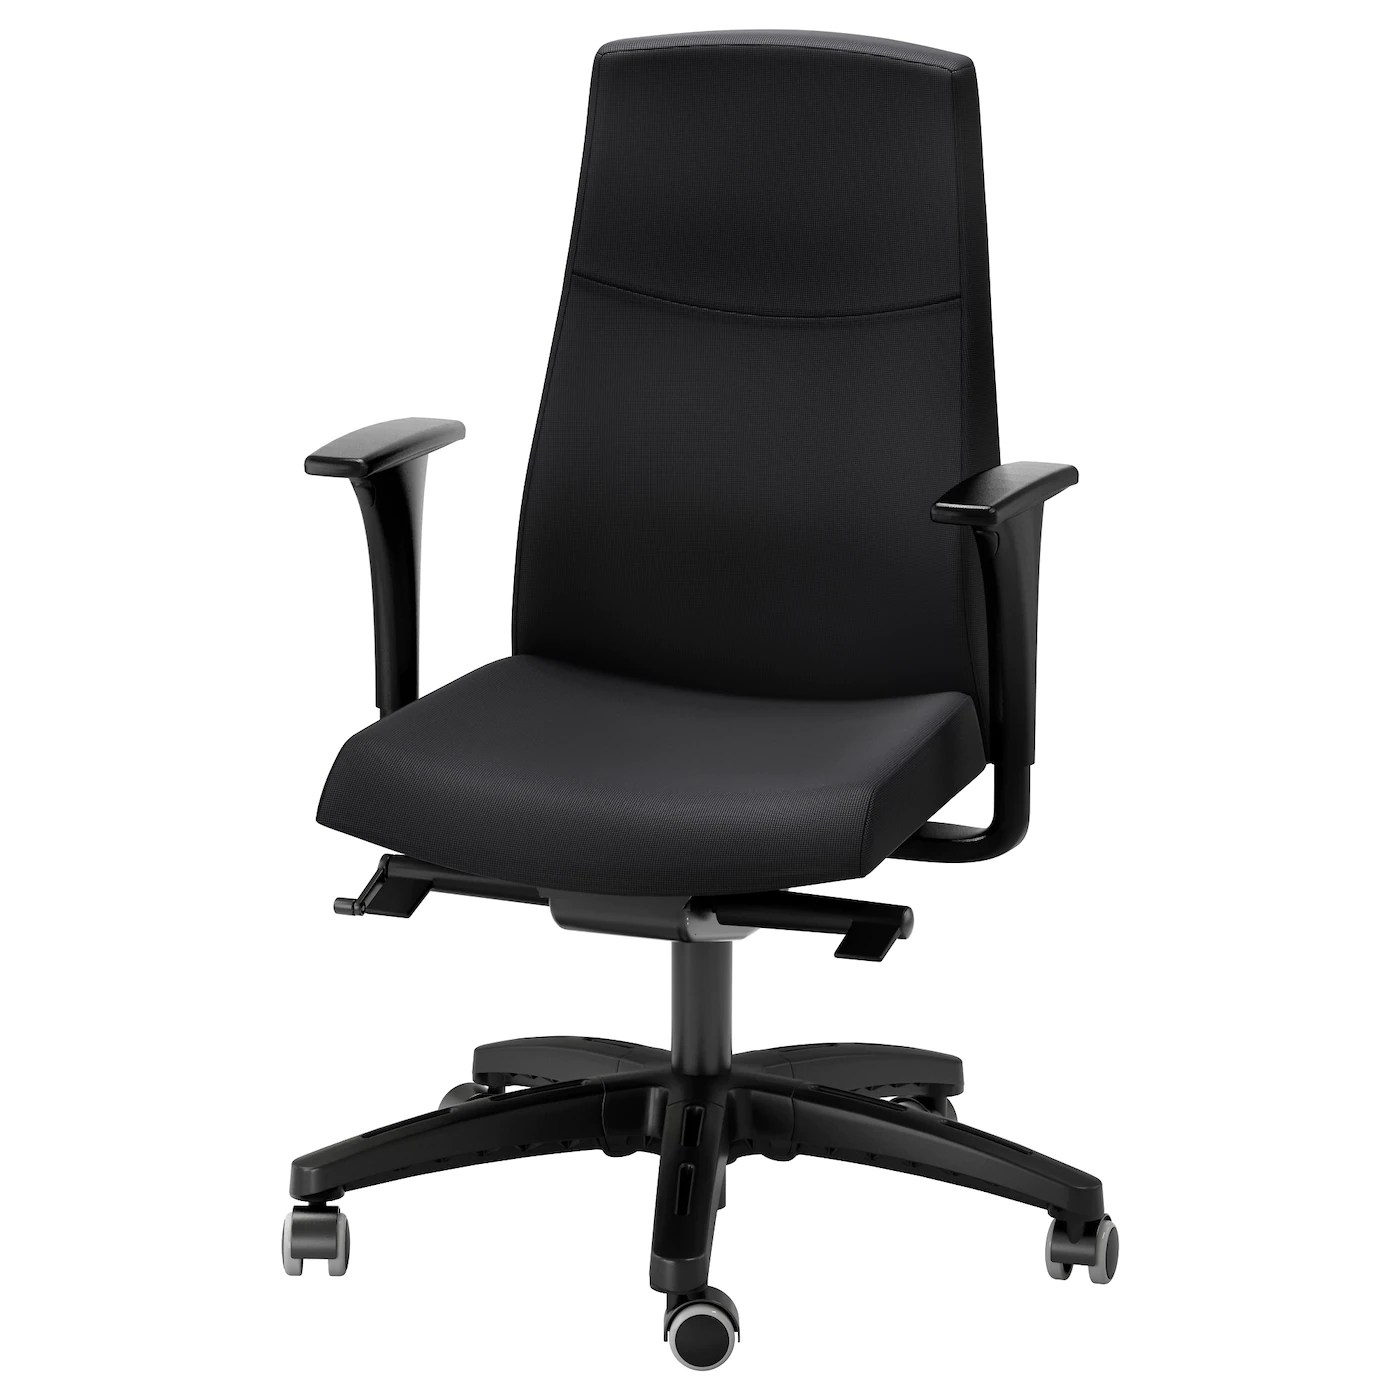 Swival Chairs Volmar Swivel Chair With Armrests Black Ikea